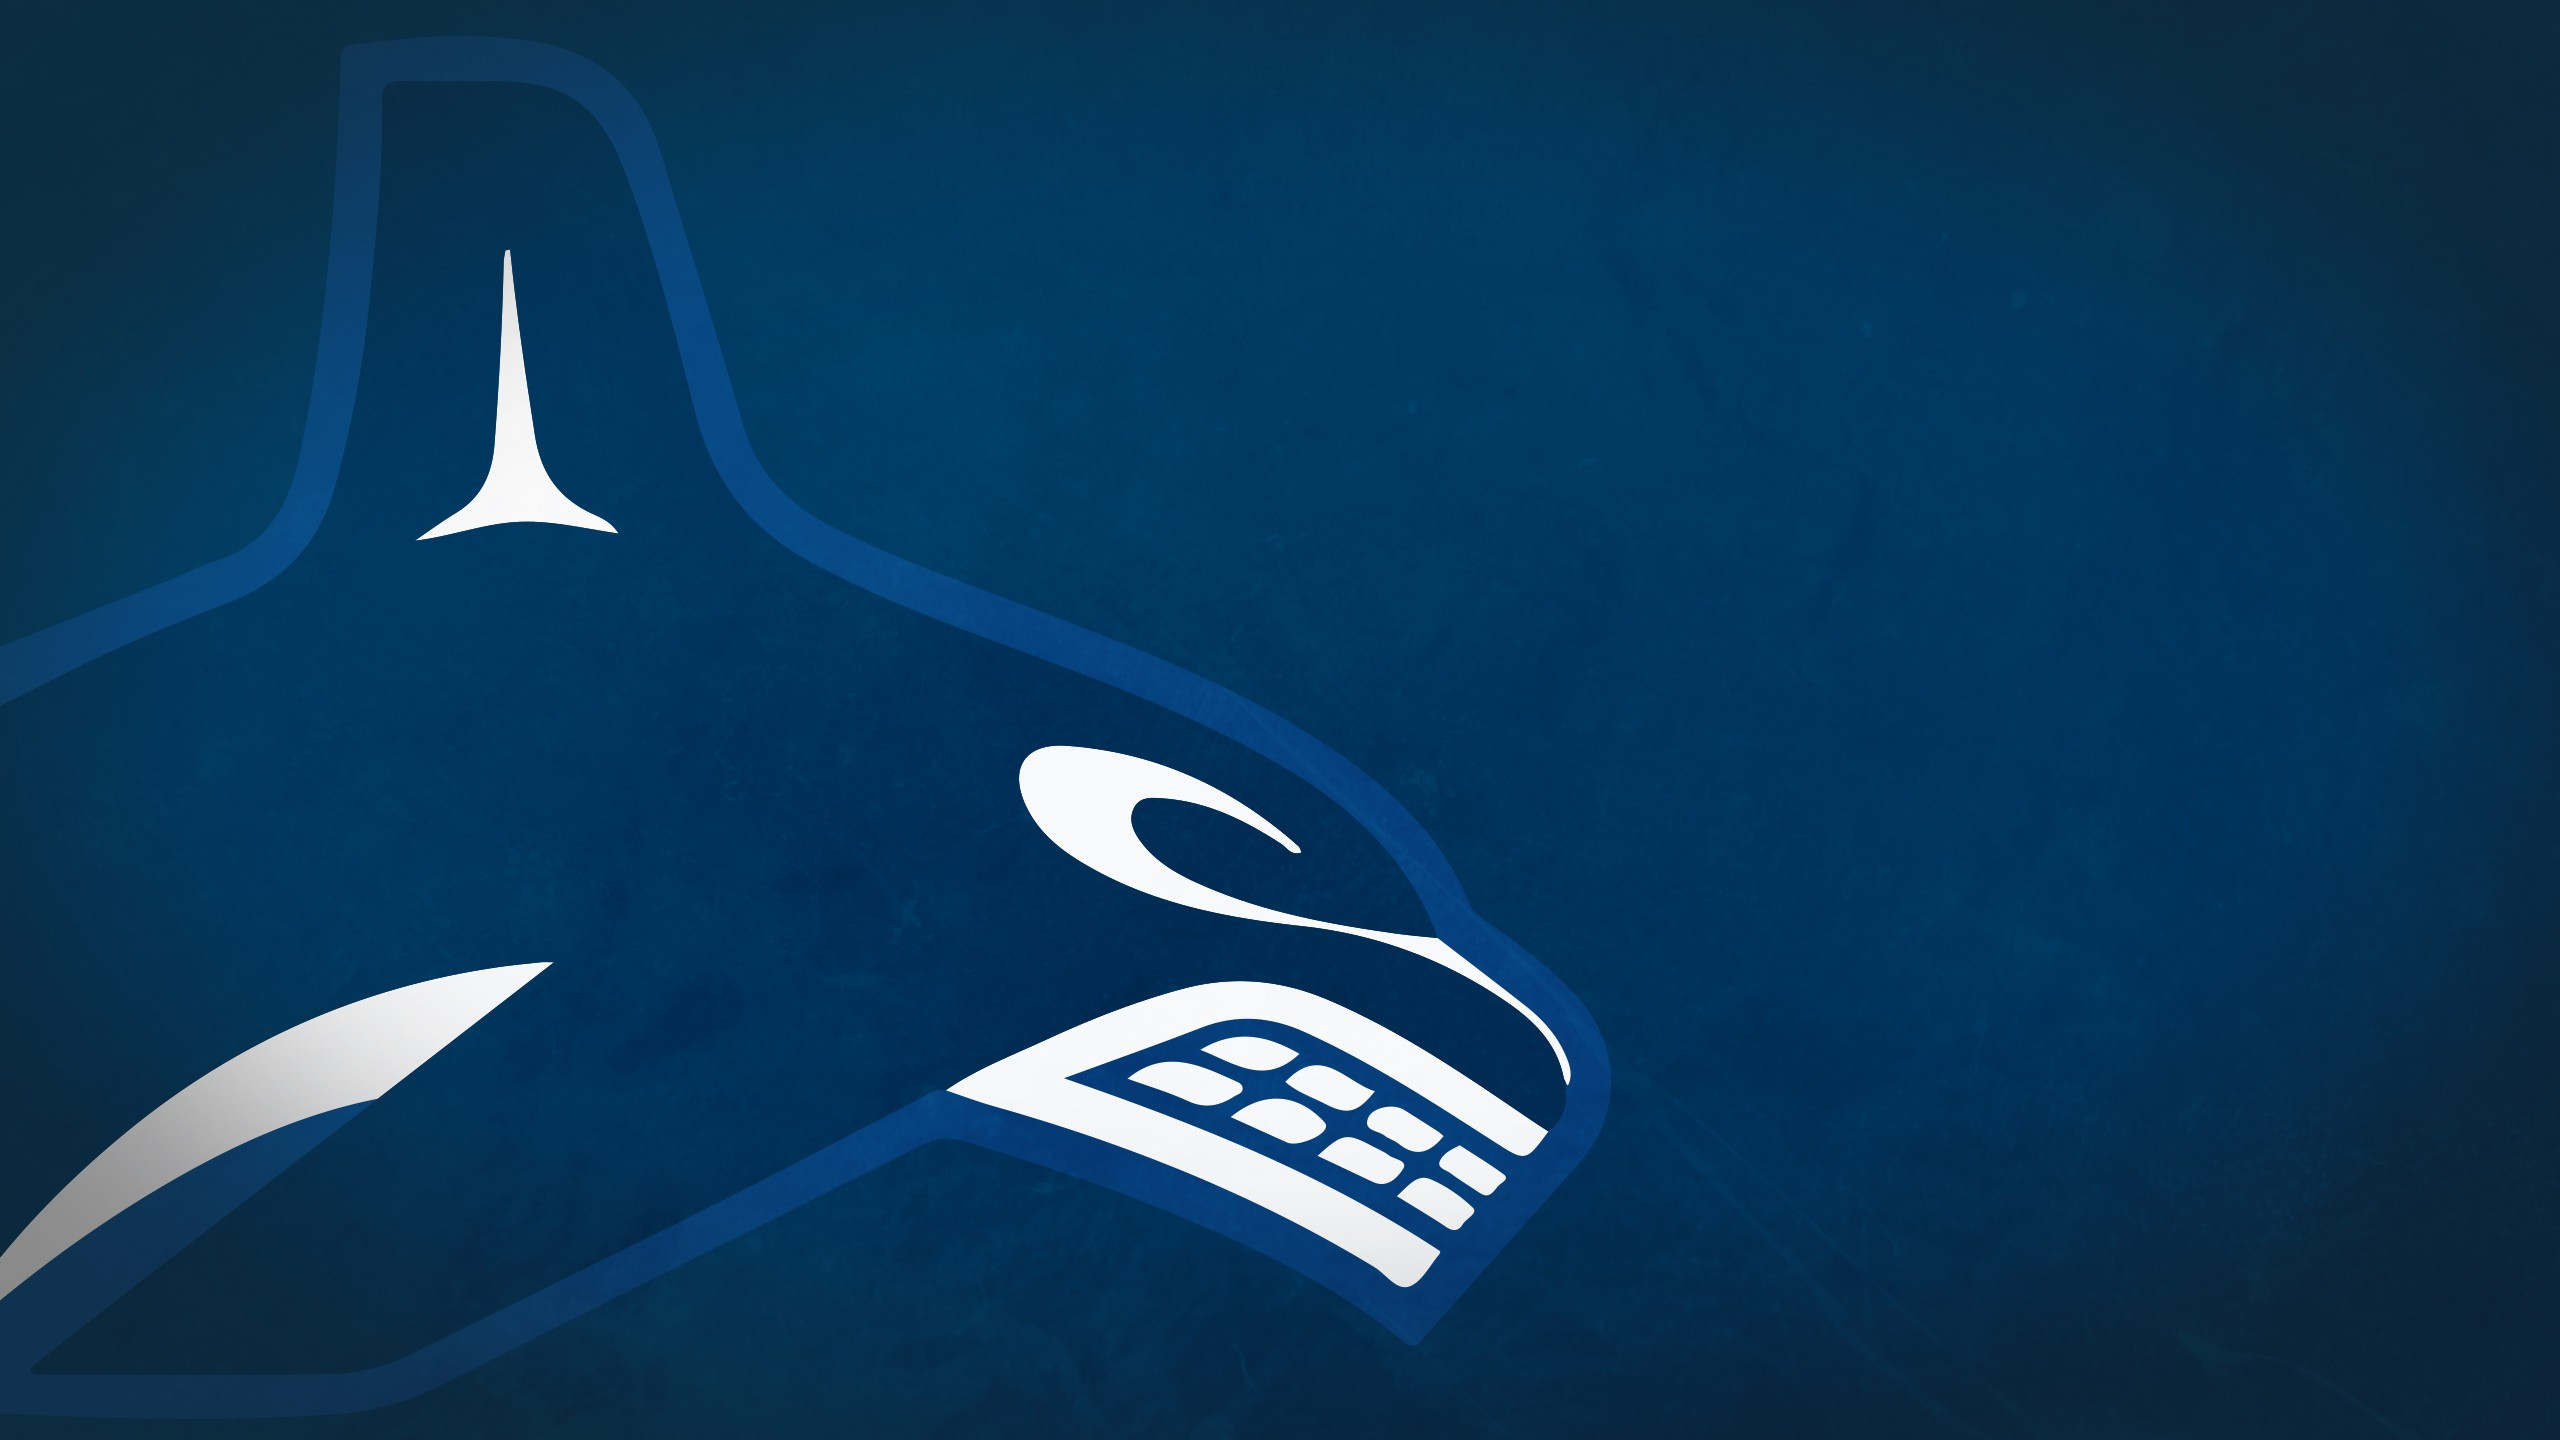 vancouver canucks computer wallpapers desktop backgrounds 2560x1440